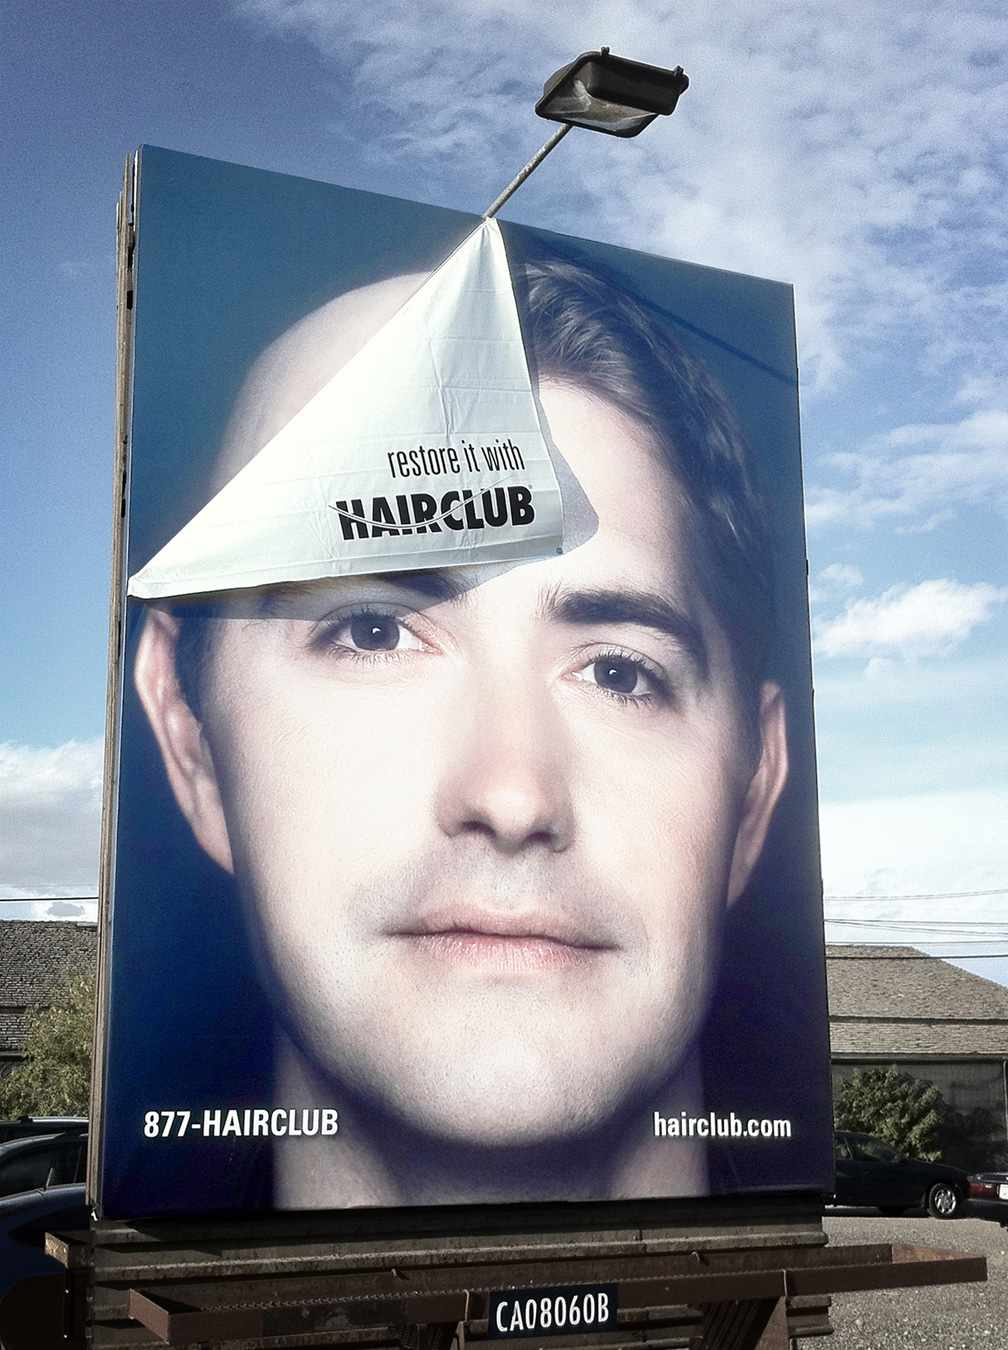 billboard-design-tips-and-examples-hairclub